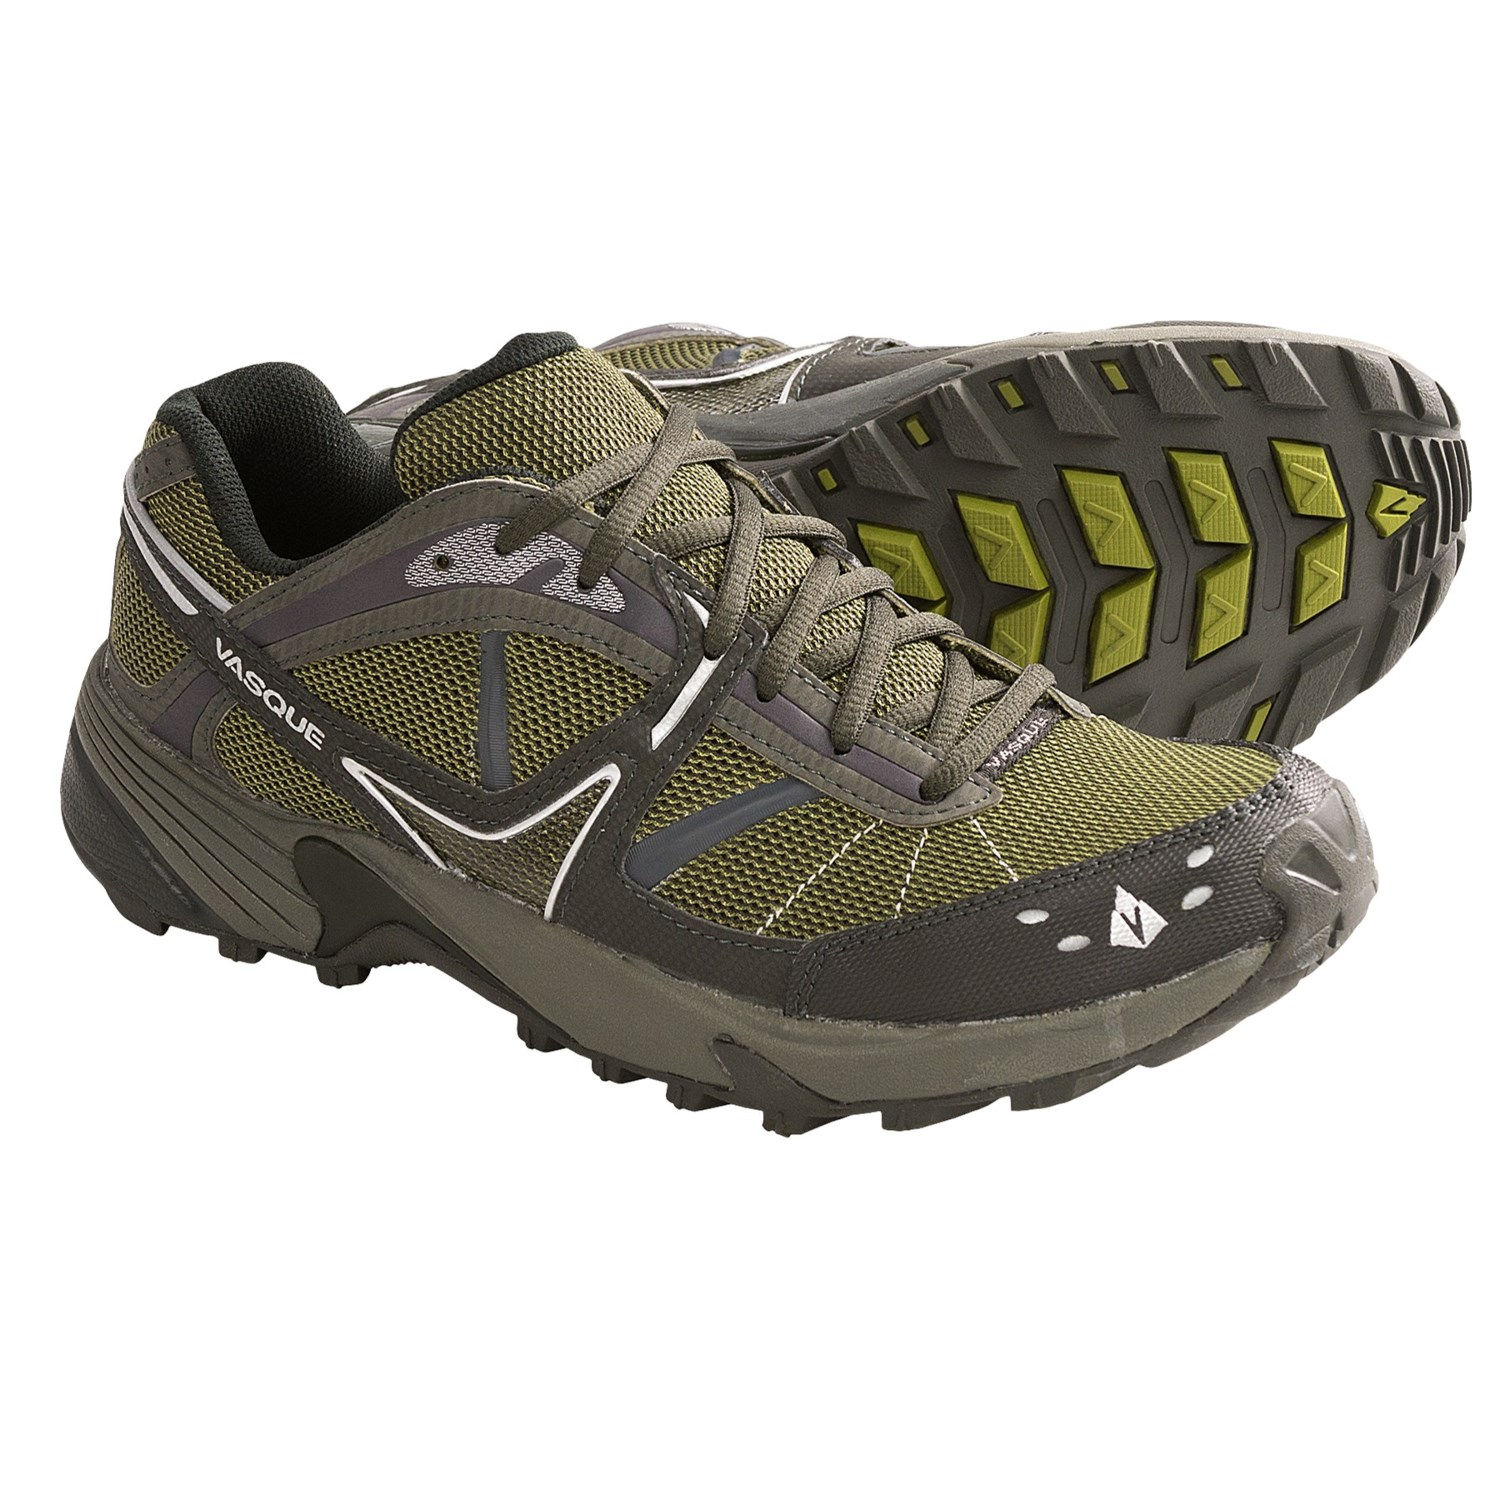 Trail Running Shoes For Hiking Reviews